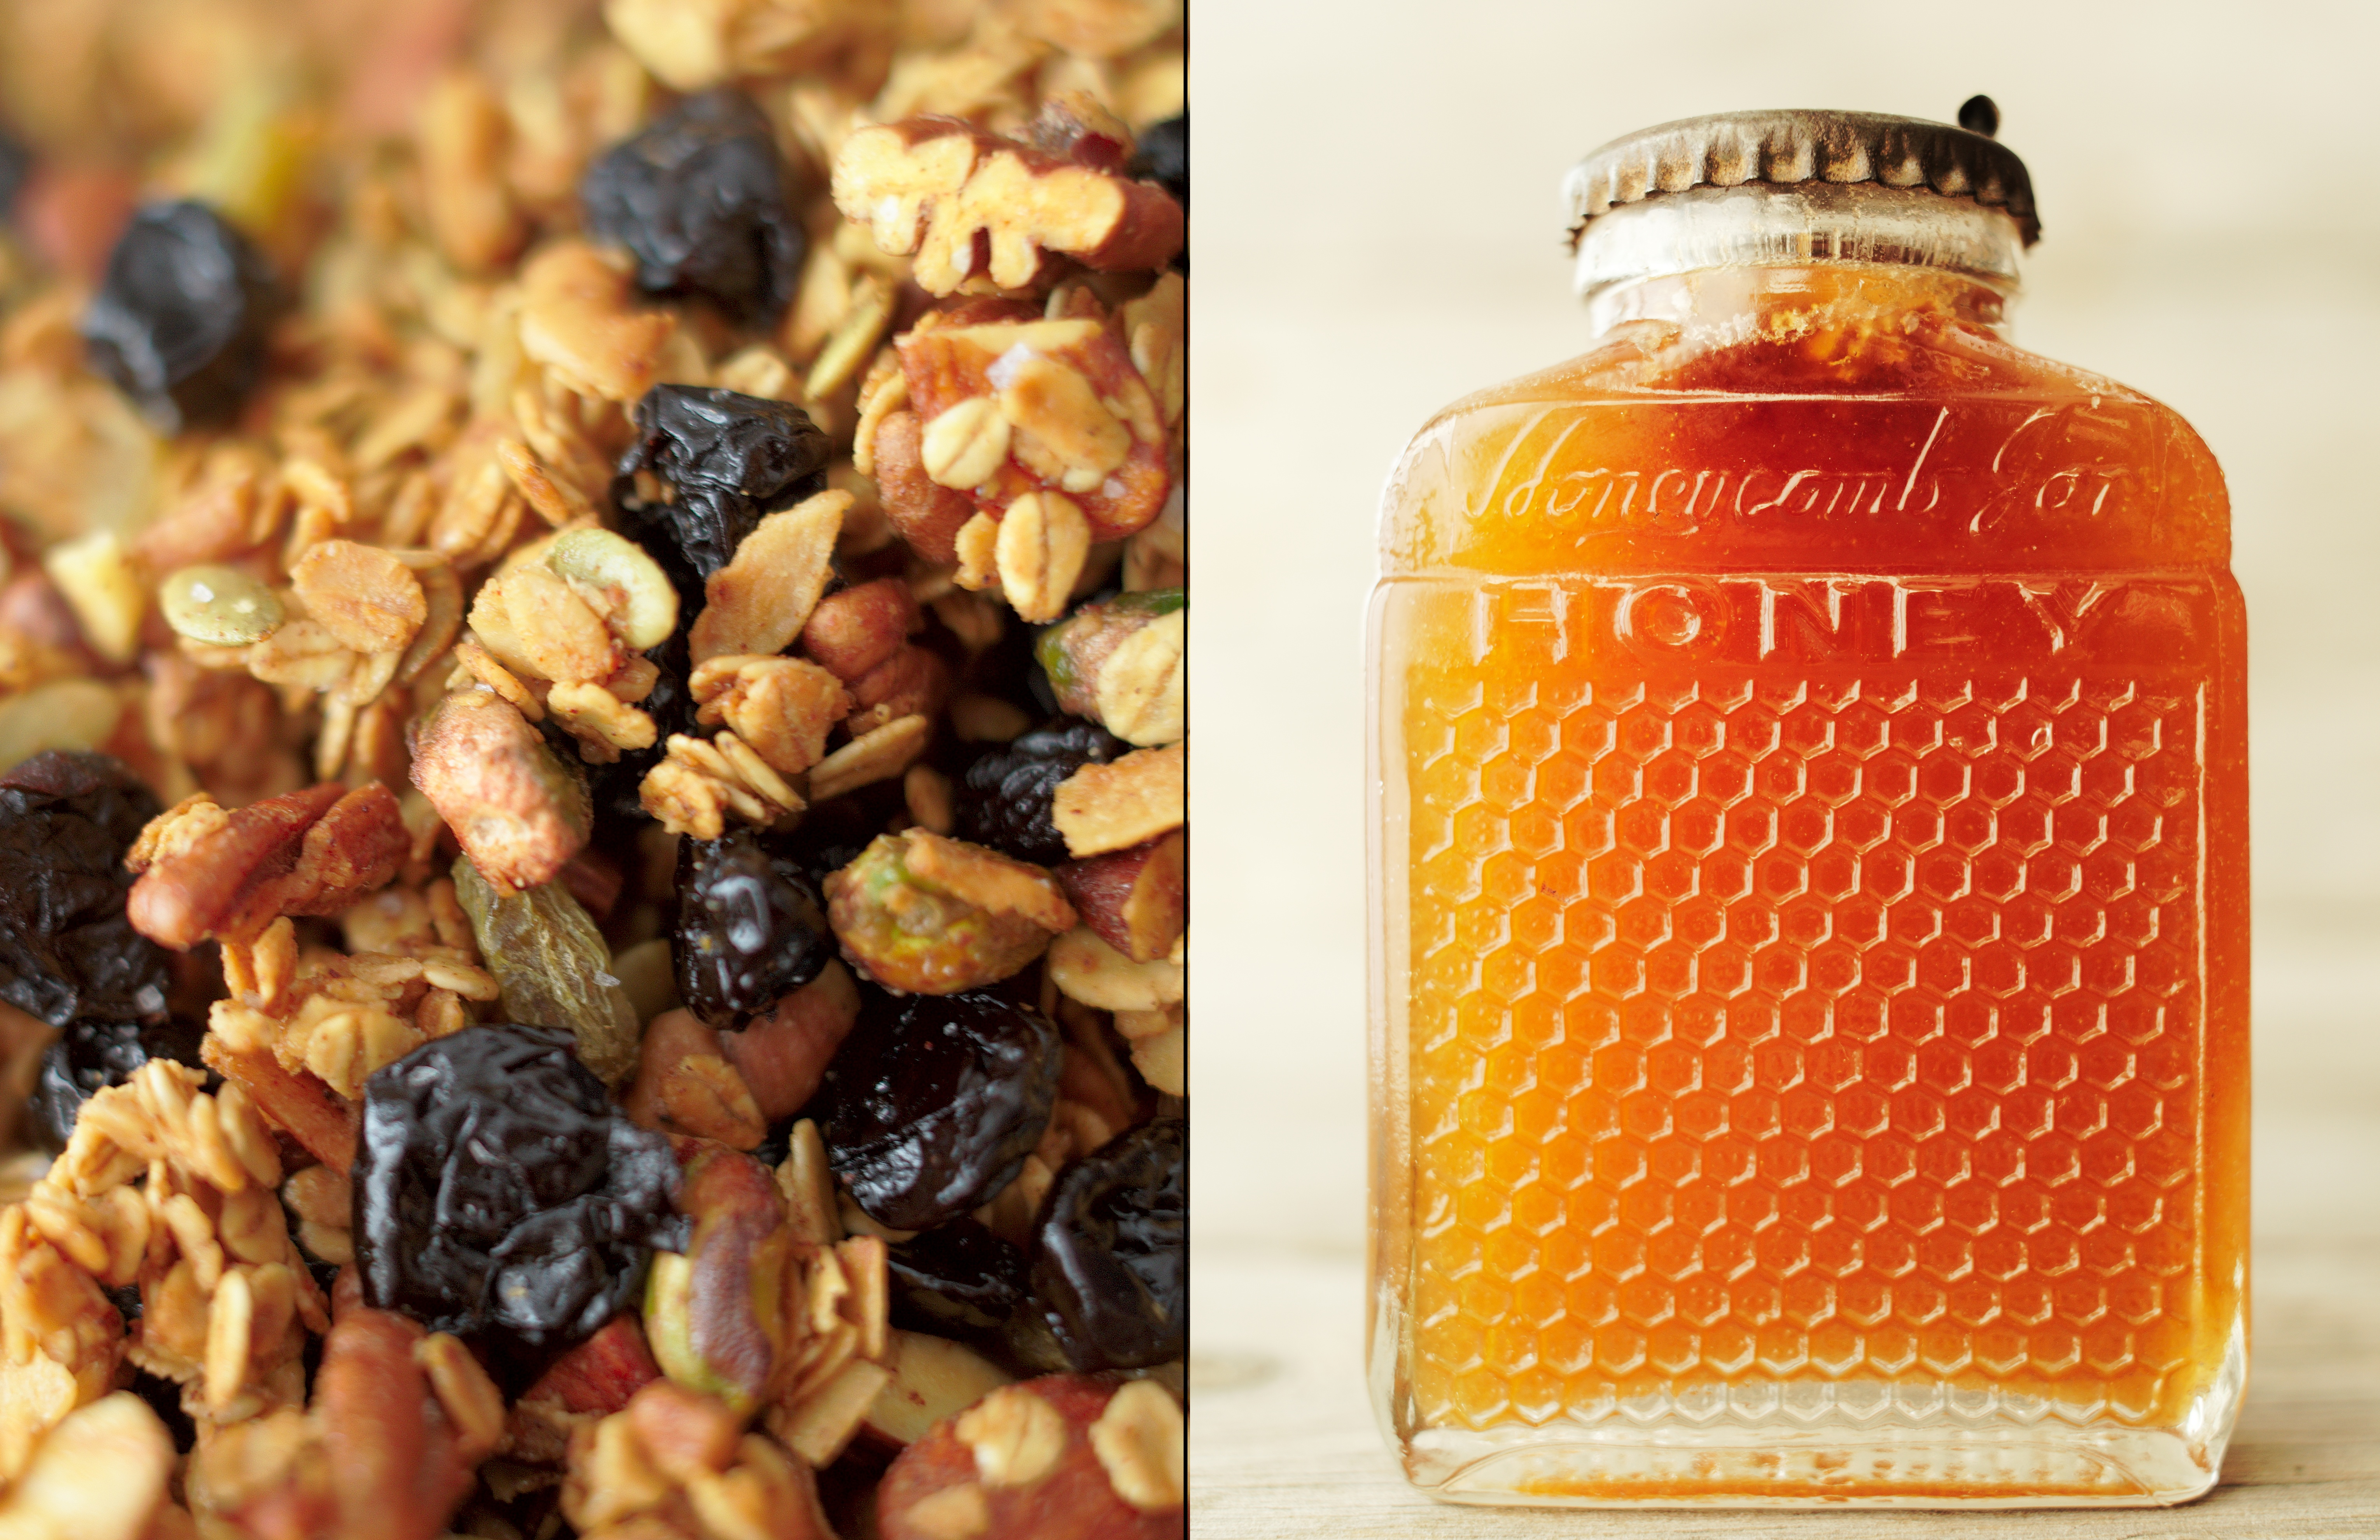 bake-honey-granola.jpg